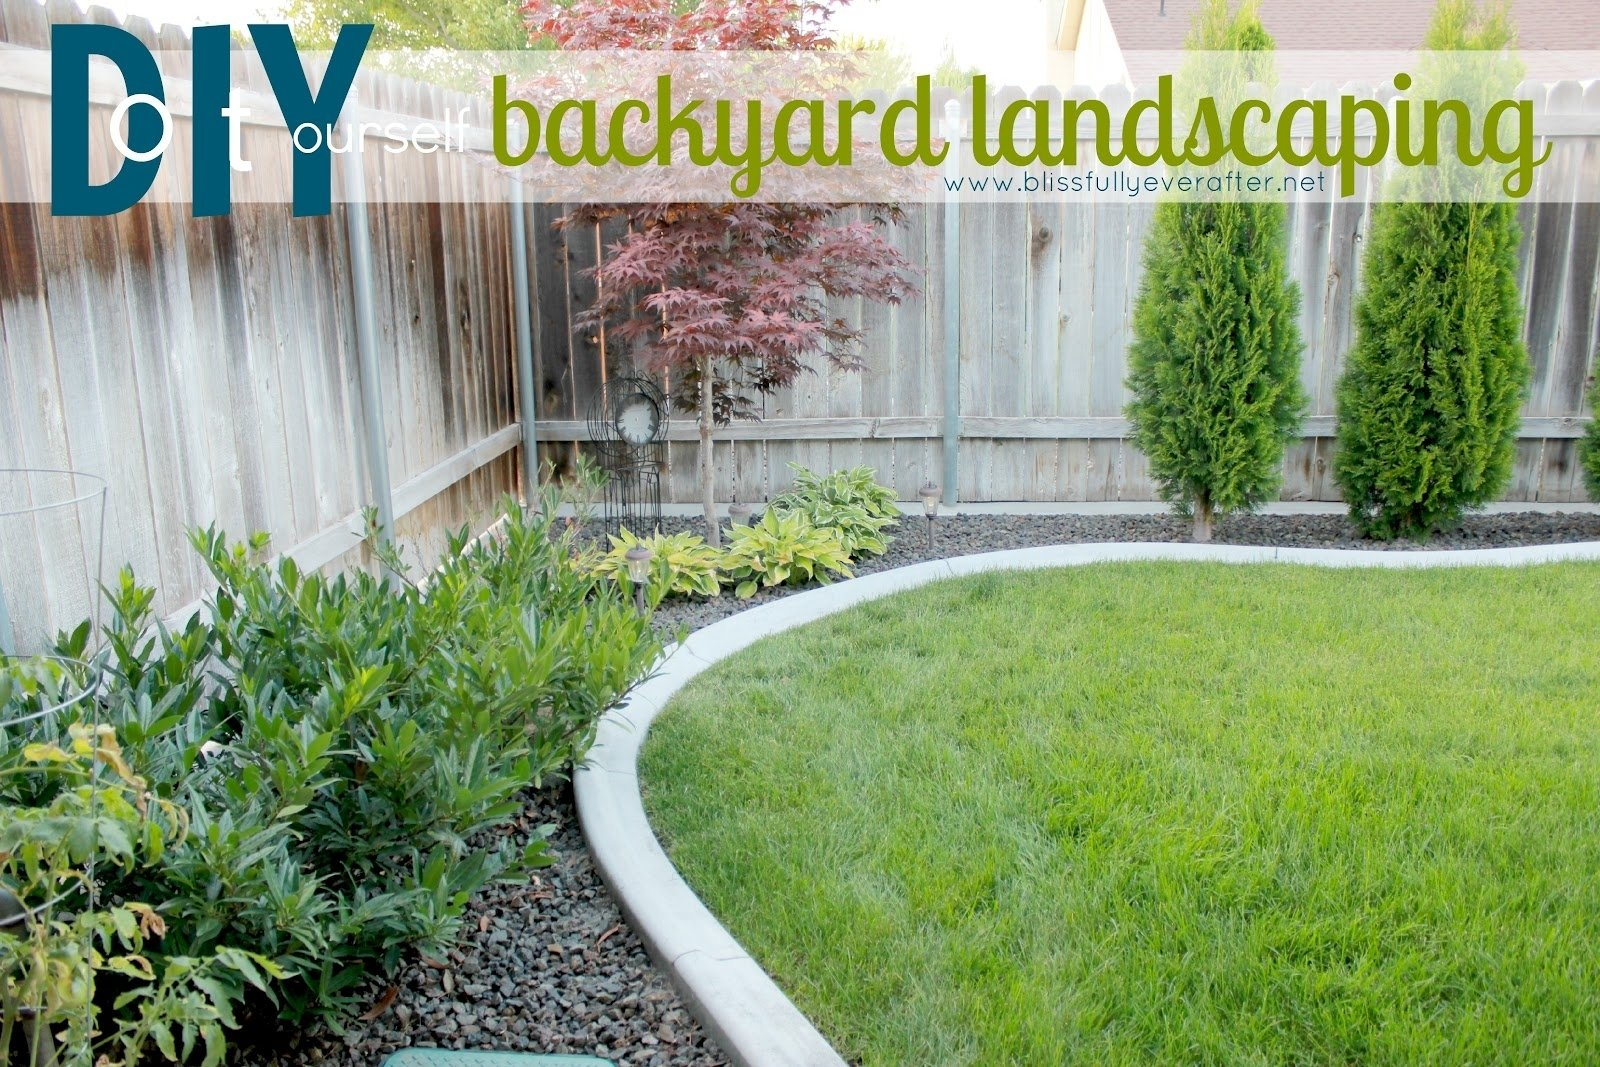 10 Ideal Diy Backyard Ideas On A Budget diy backyard ideas cheap large and beautiful photos photo to 2020